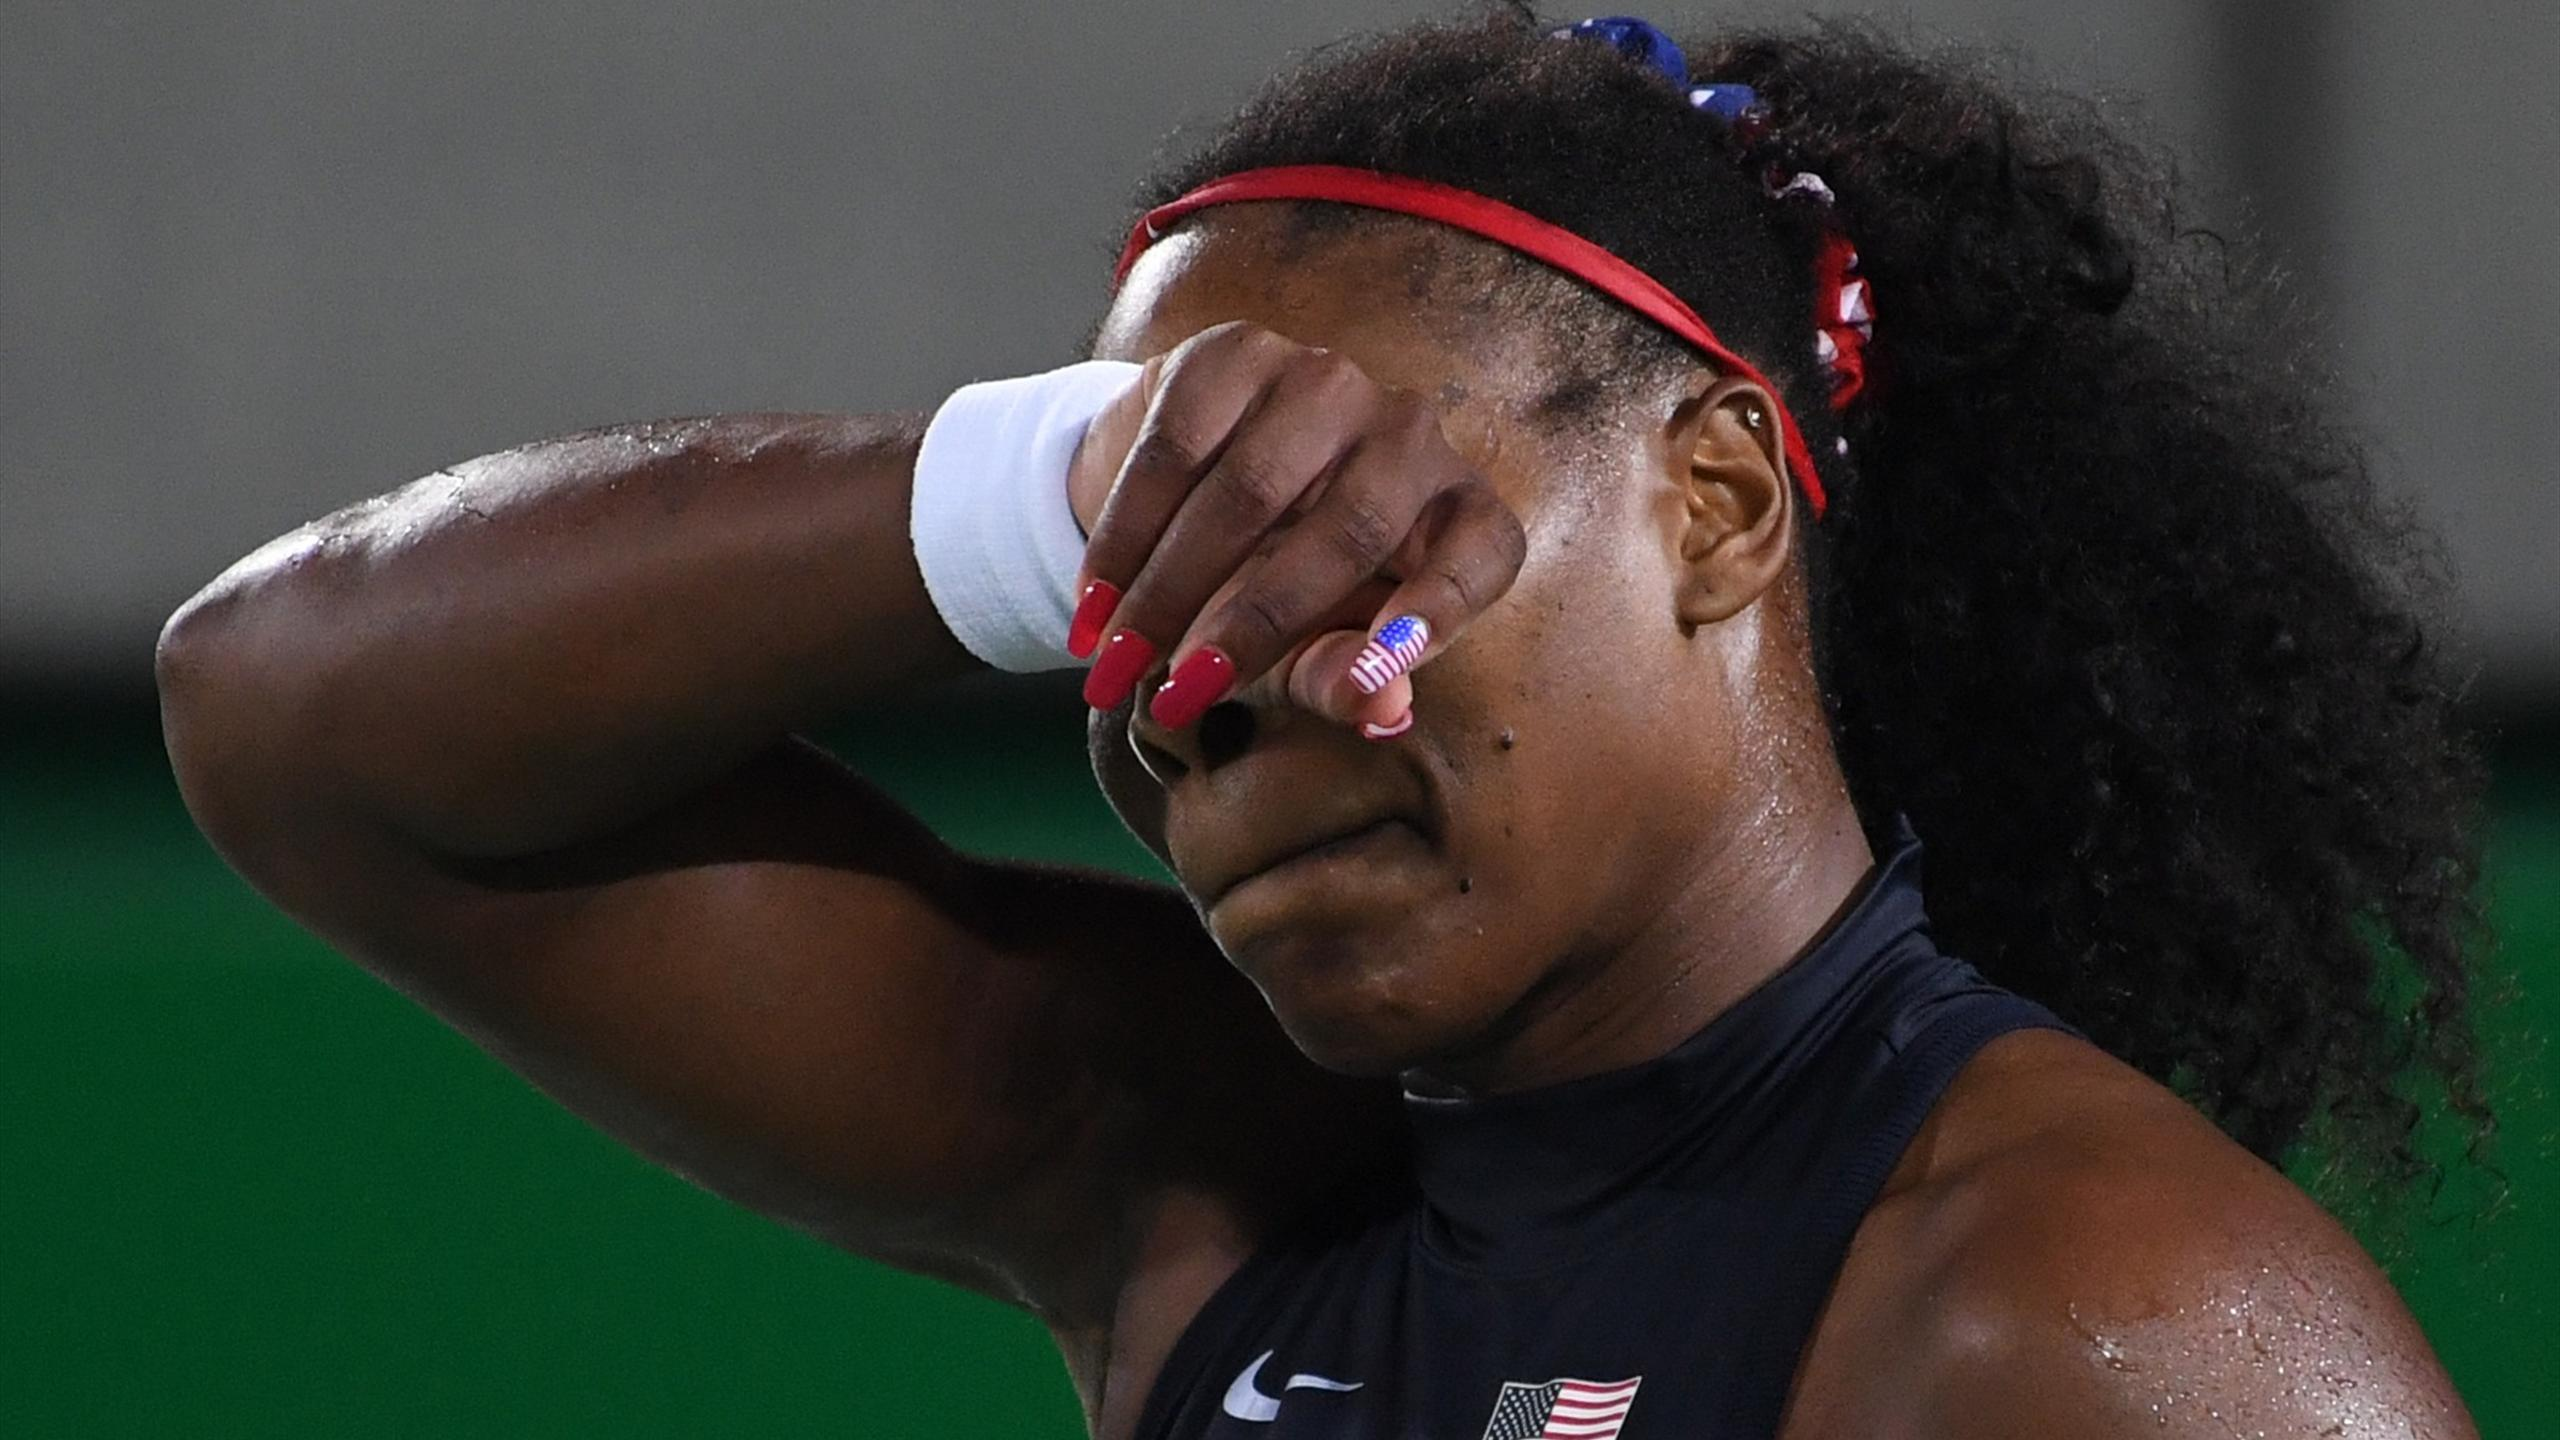 Serena Williams in Rio 2016